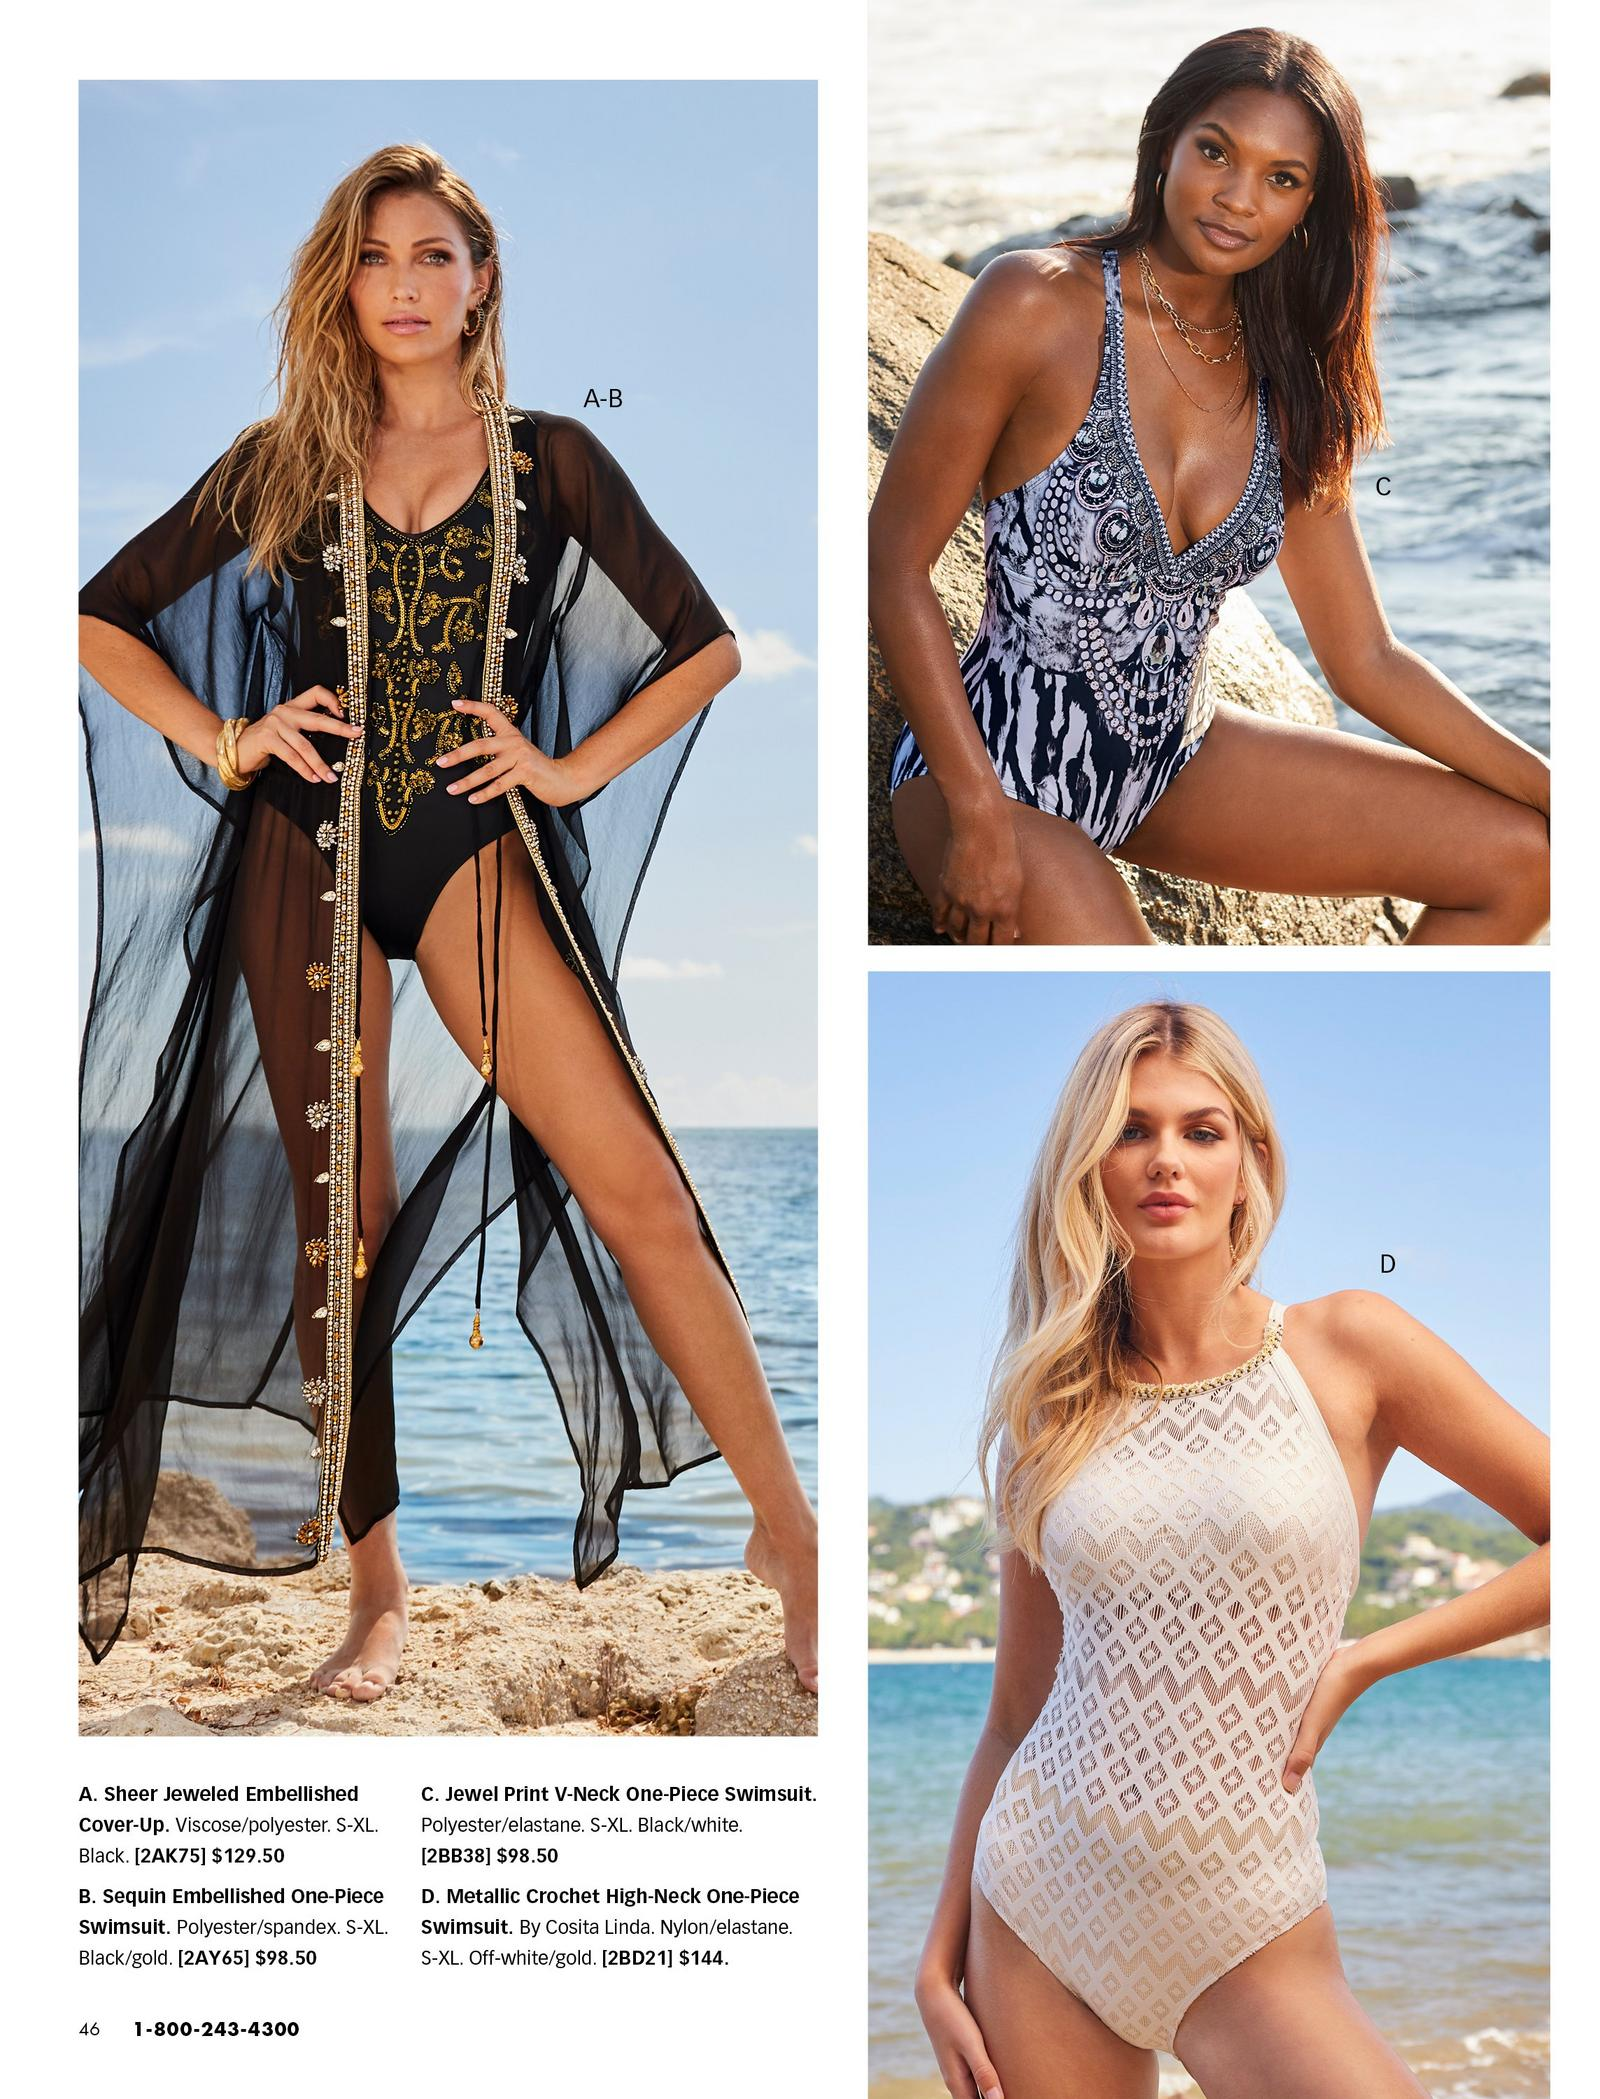 left model wearing a black and gold embellished one-piece swimsuit and a black and gold sheer duster coverup. top right model wearing a blue jewel printed one-piece swimsuit. bottom right model wearing a white high-neck crochet one piece swimsuit.